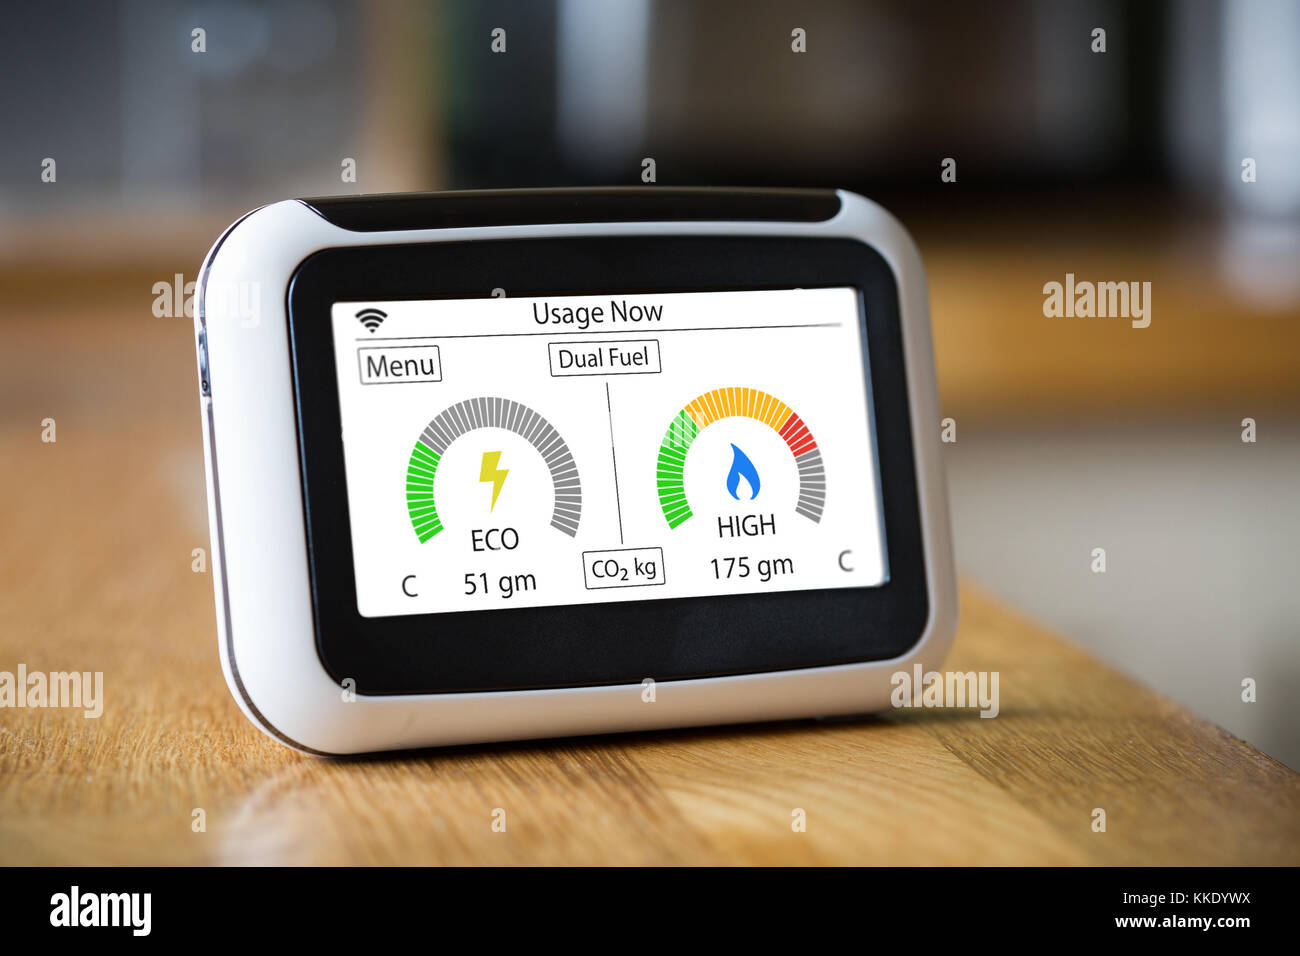 Domestic Energy Smart Meter on a Kitchen Worktop Displaying Electric and Gas Carbon Emissions in Real Time - Stock Image